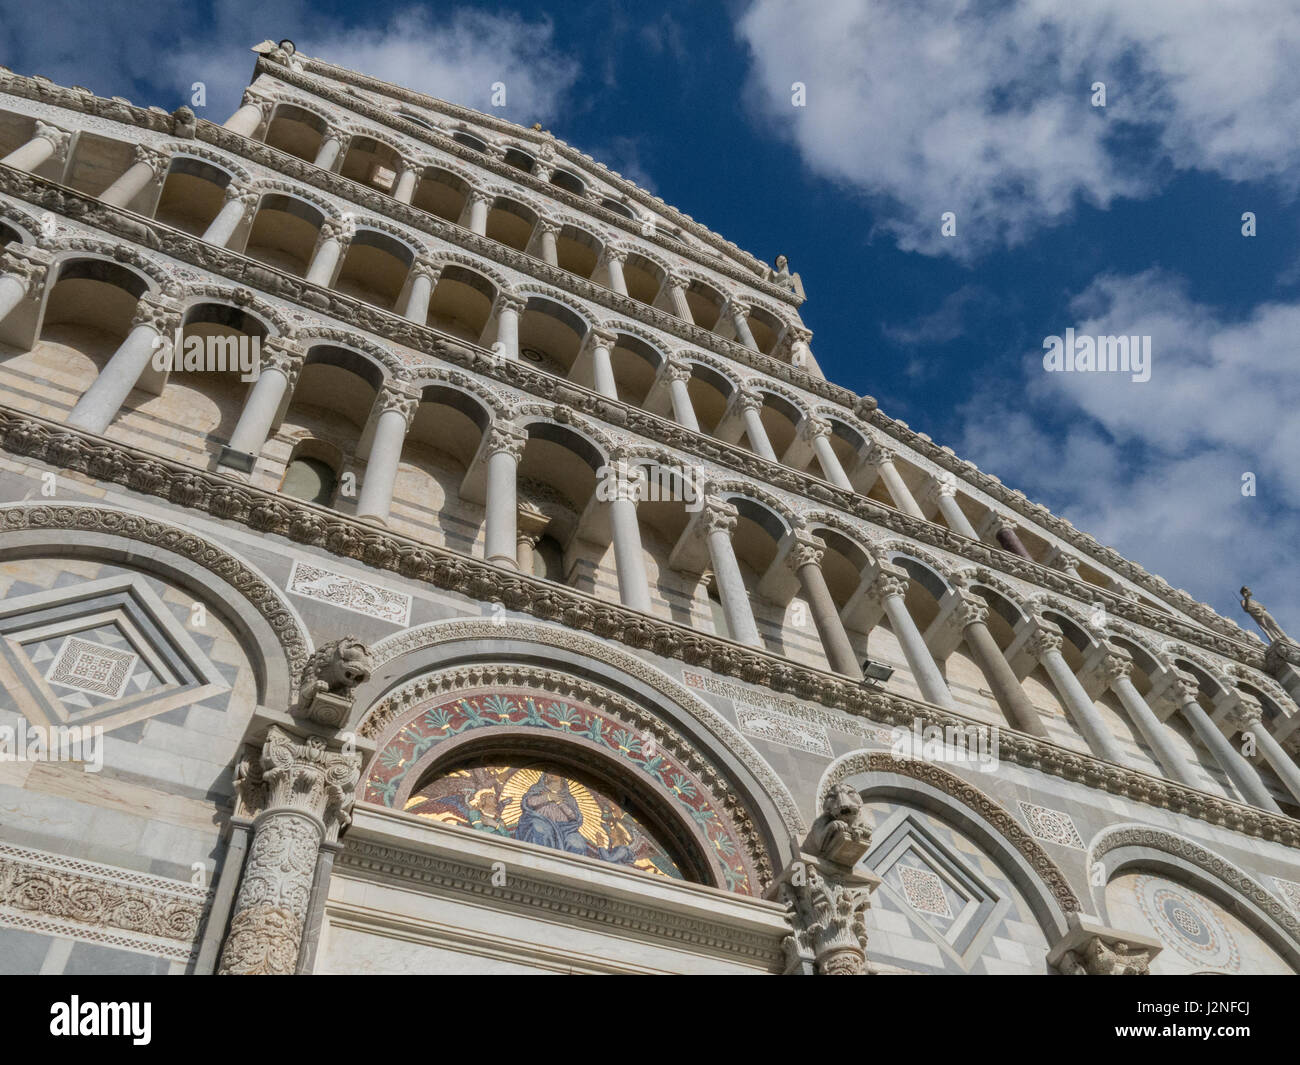 Pisa Cathedral (Duomo di Pisa) on Cathedral Square in Pisa, Piazza dei Miracoli - Tuscany, Italy. Stock Photo